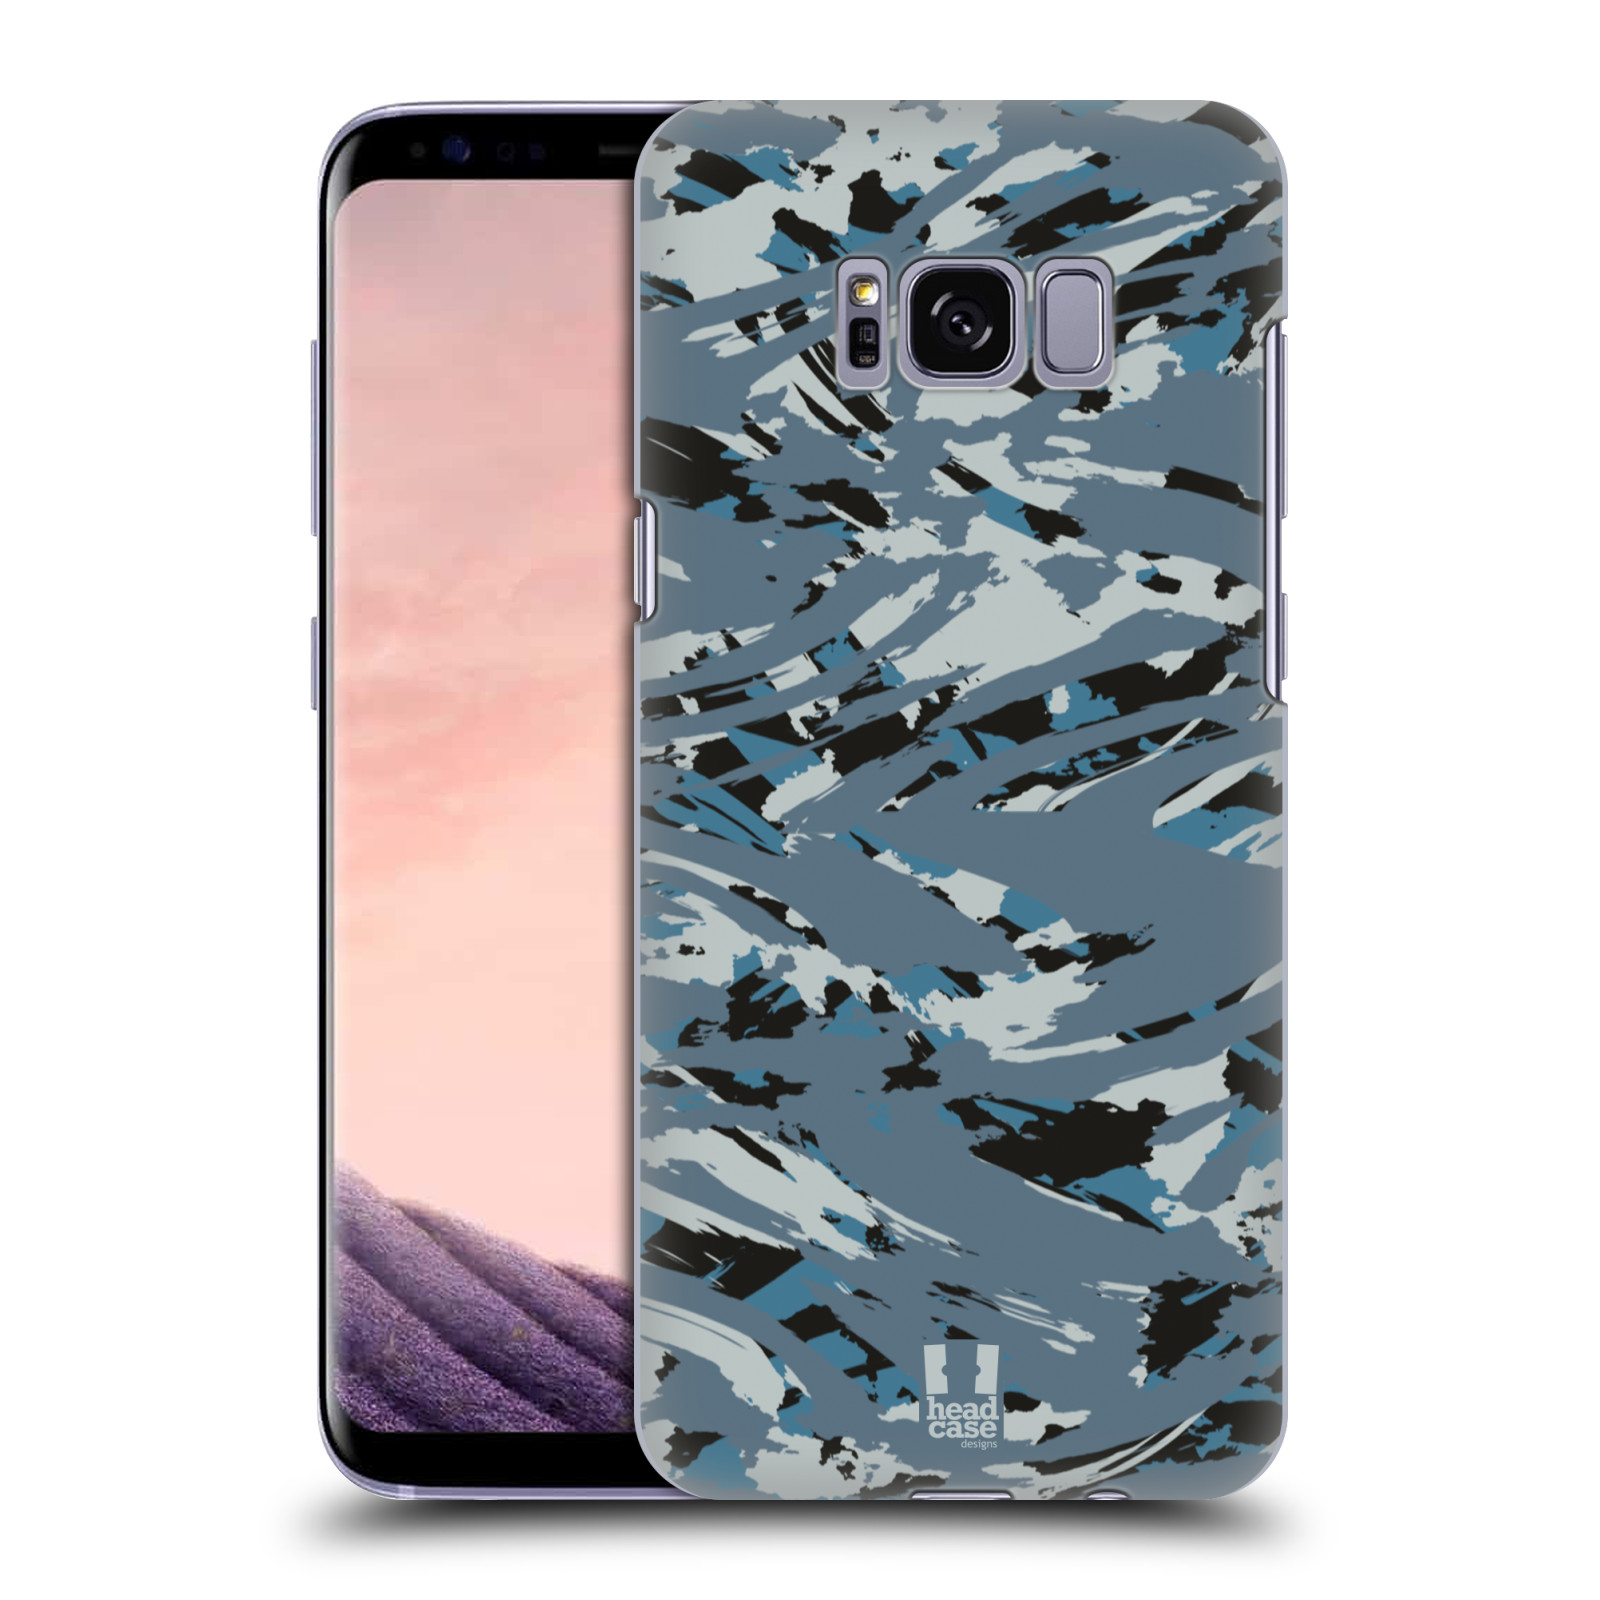 HEAD-CASE-DESIGNS-DIGITAL-CAMOU-HARD-BACK-CASE-FOR-SAMSUNG-GALAXY-S8